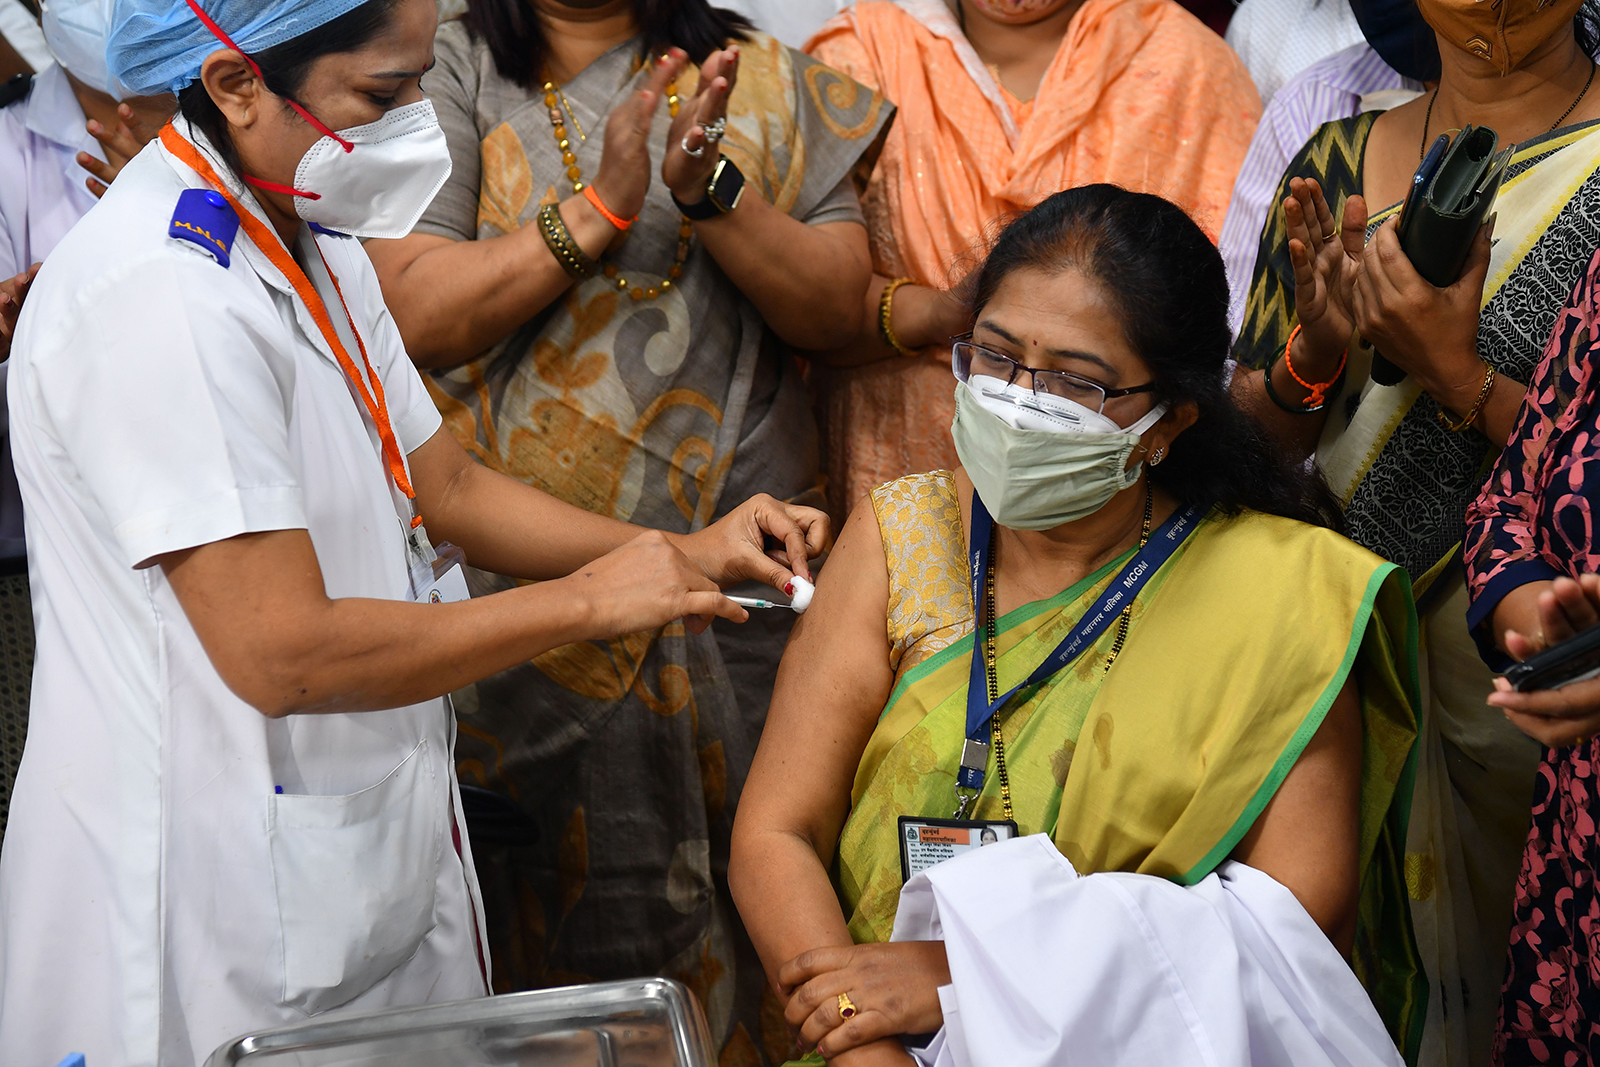 A medical worker inoculates Vidya Thakur, medical dean of the Rajawadi Hospital, with a Covid-19 vaccine at the hospital in Mumbai, India, on January 16.